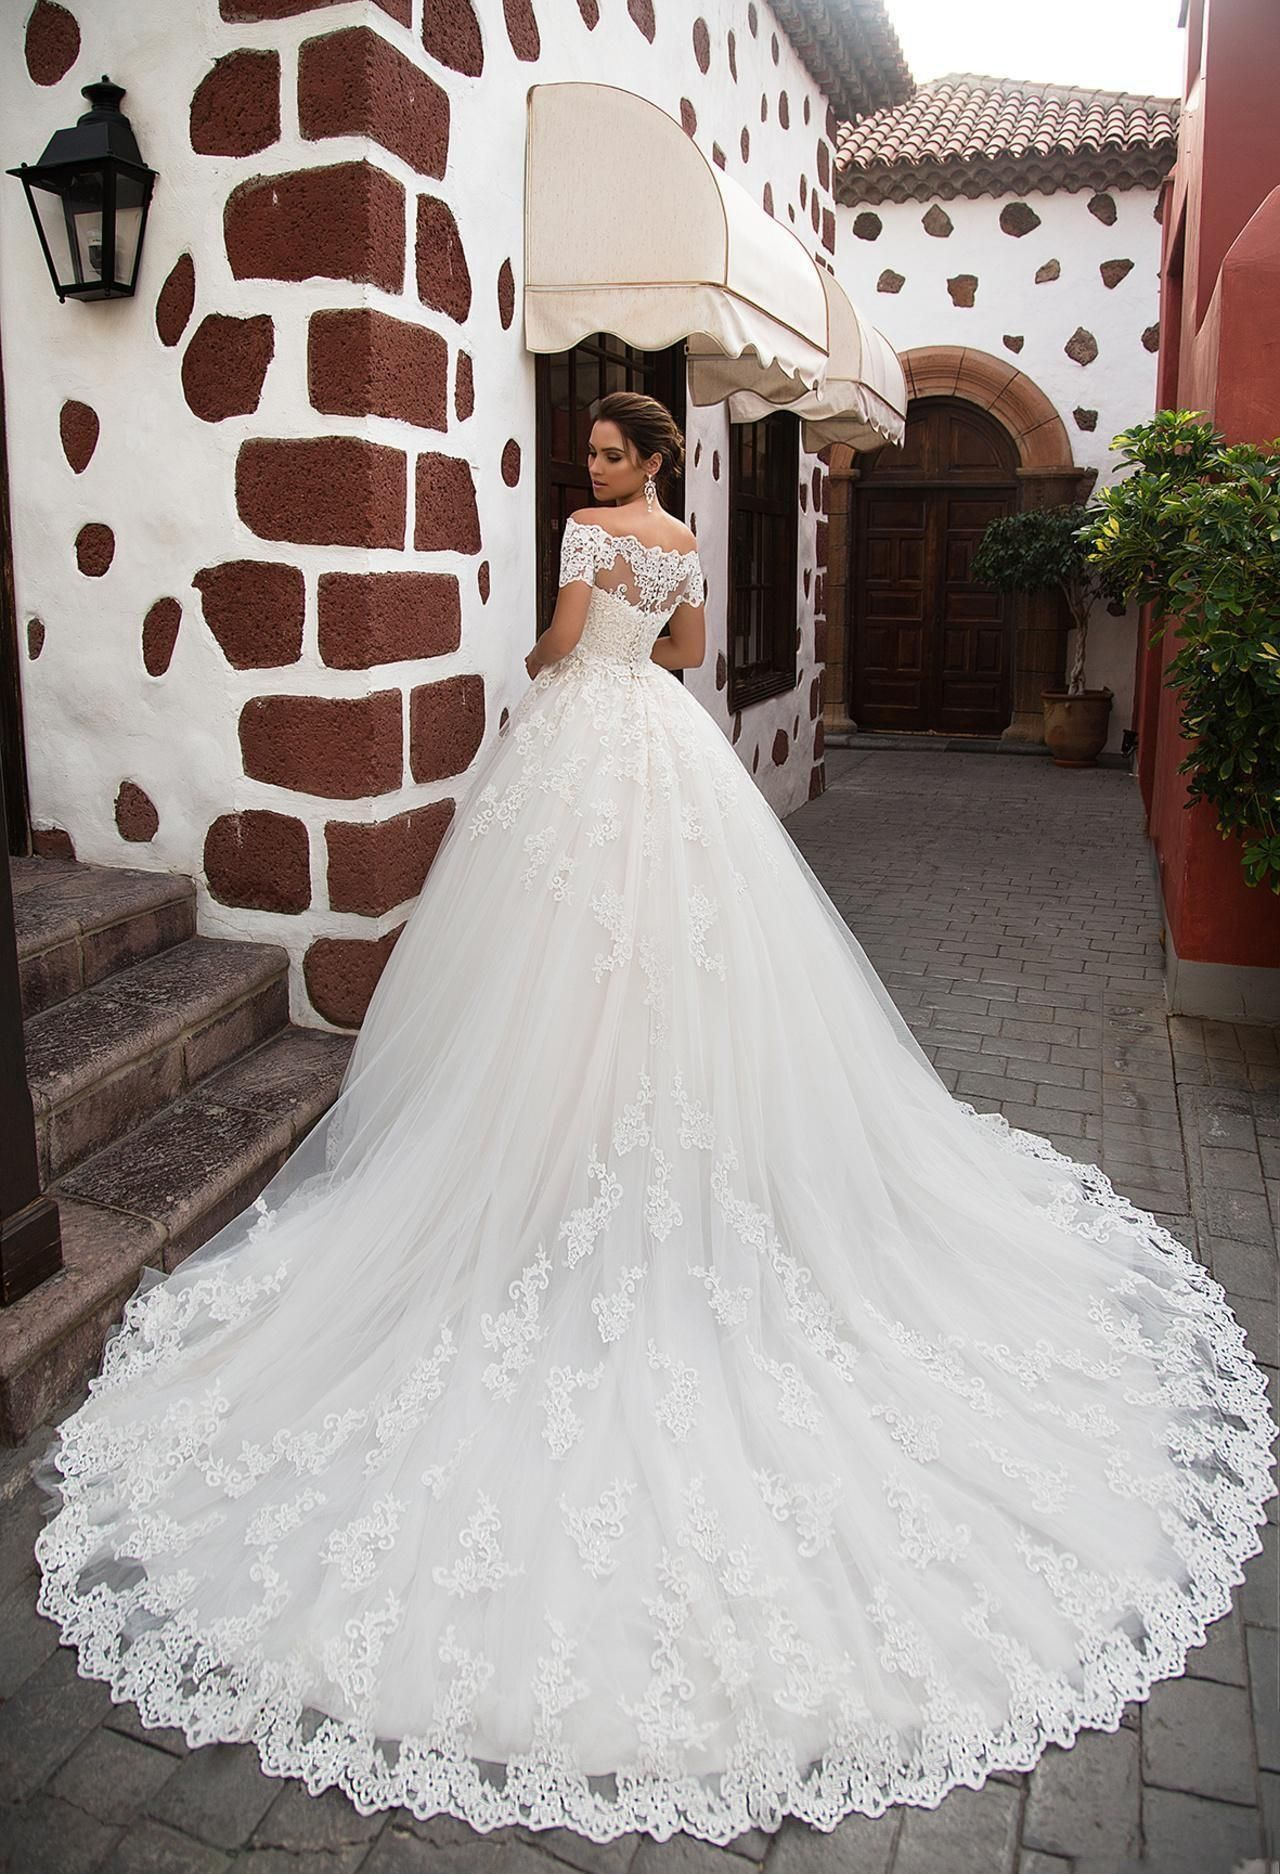 African Plus Size White Ball Gown Wedding Dresses With Sleeves Boat Neck Beaded Crystals Wedding Bridal Gowns Ba7216 From Bestoffers 73 01 Dhgate Com Ball Gown Wedding Dress Lace Princess Wedding Dresses [ 1874 x 1280 Pixel ]